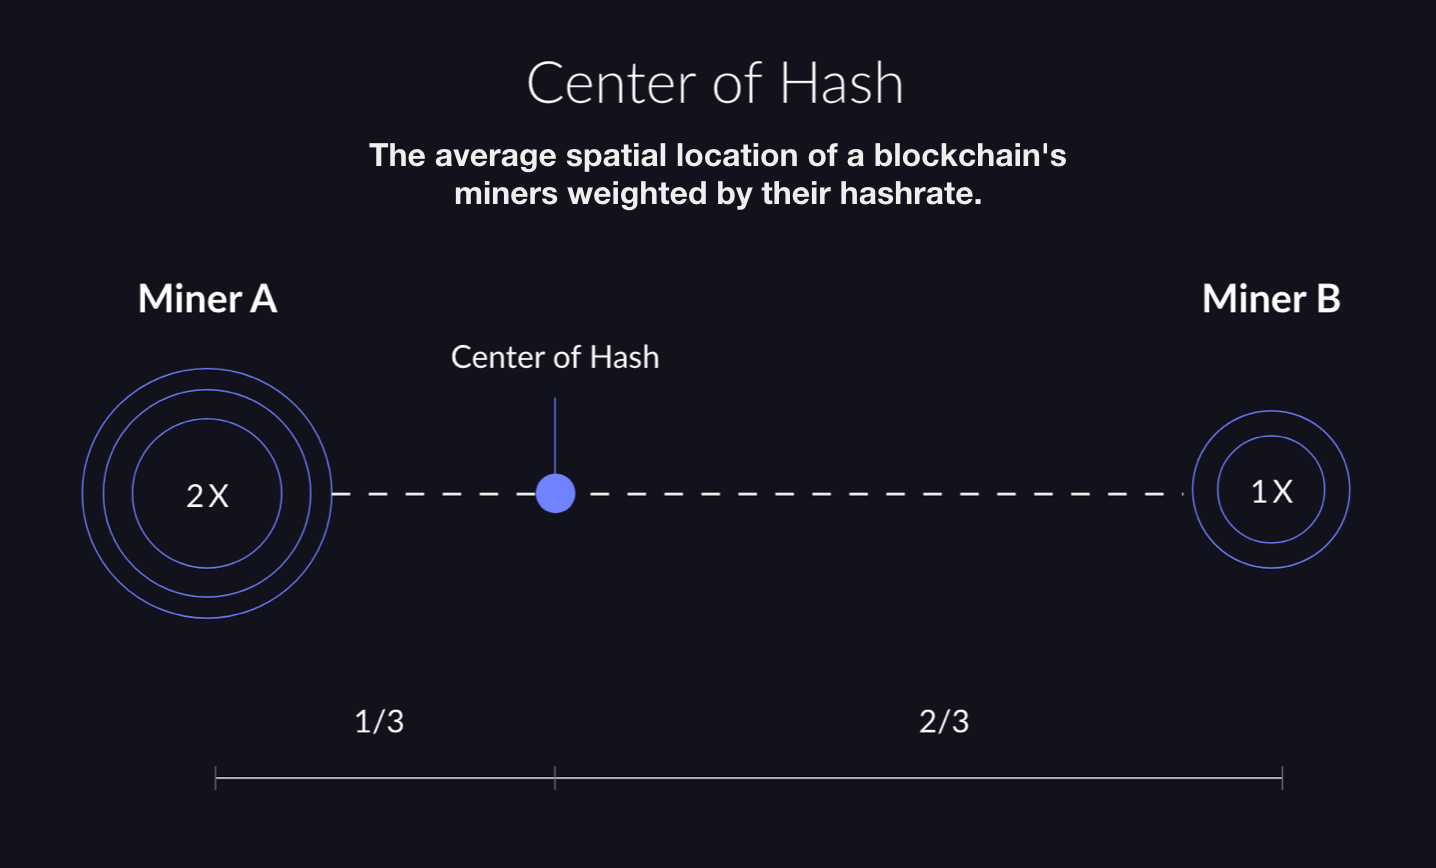 Center of Hash: The average spatial location of a blockchain's miners weighted by their hashrate.